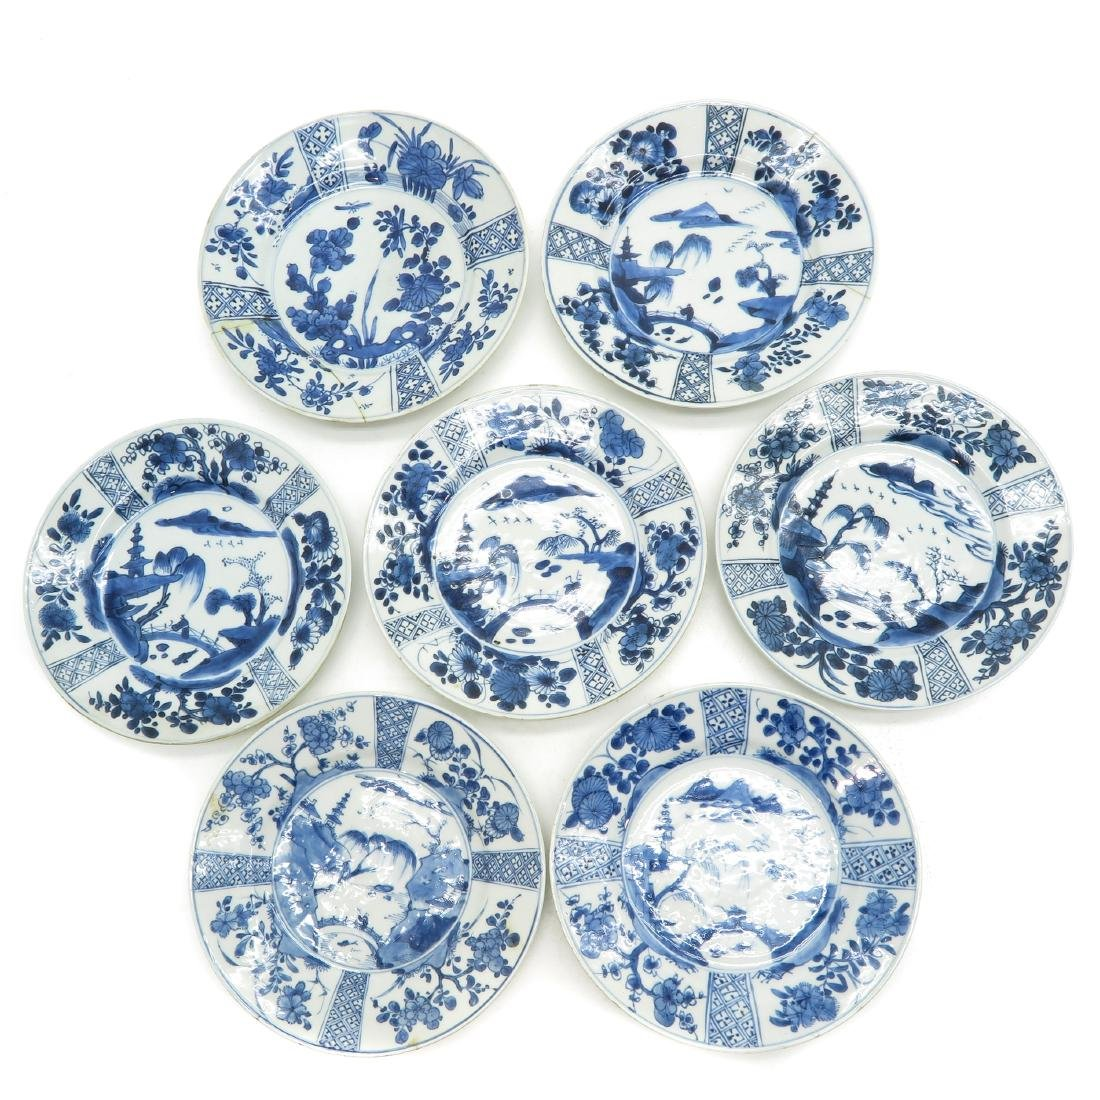 Lot of 7 Plates